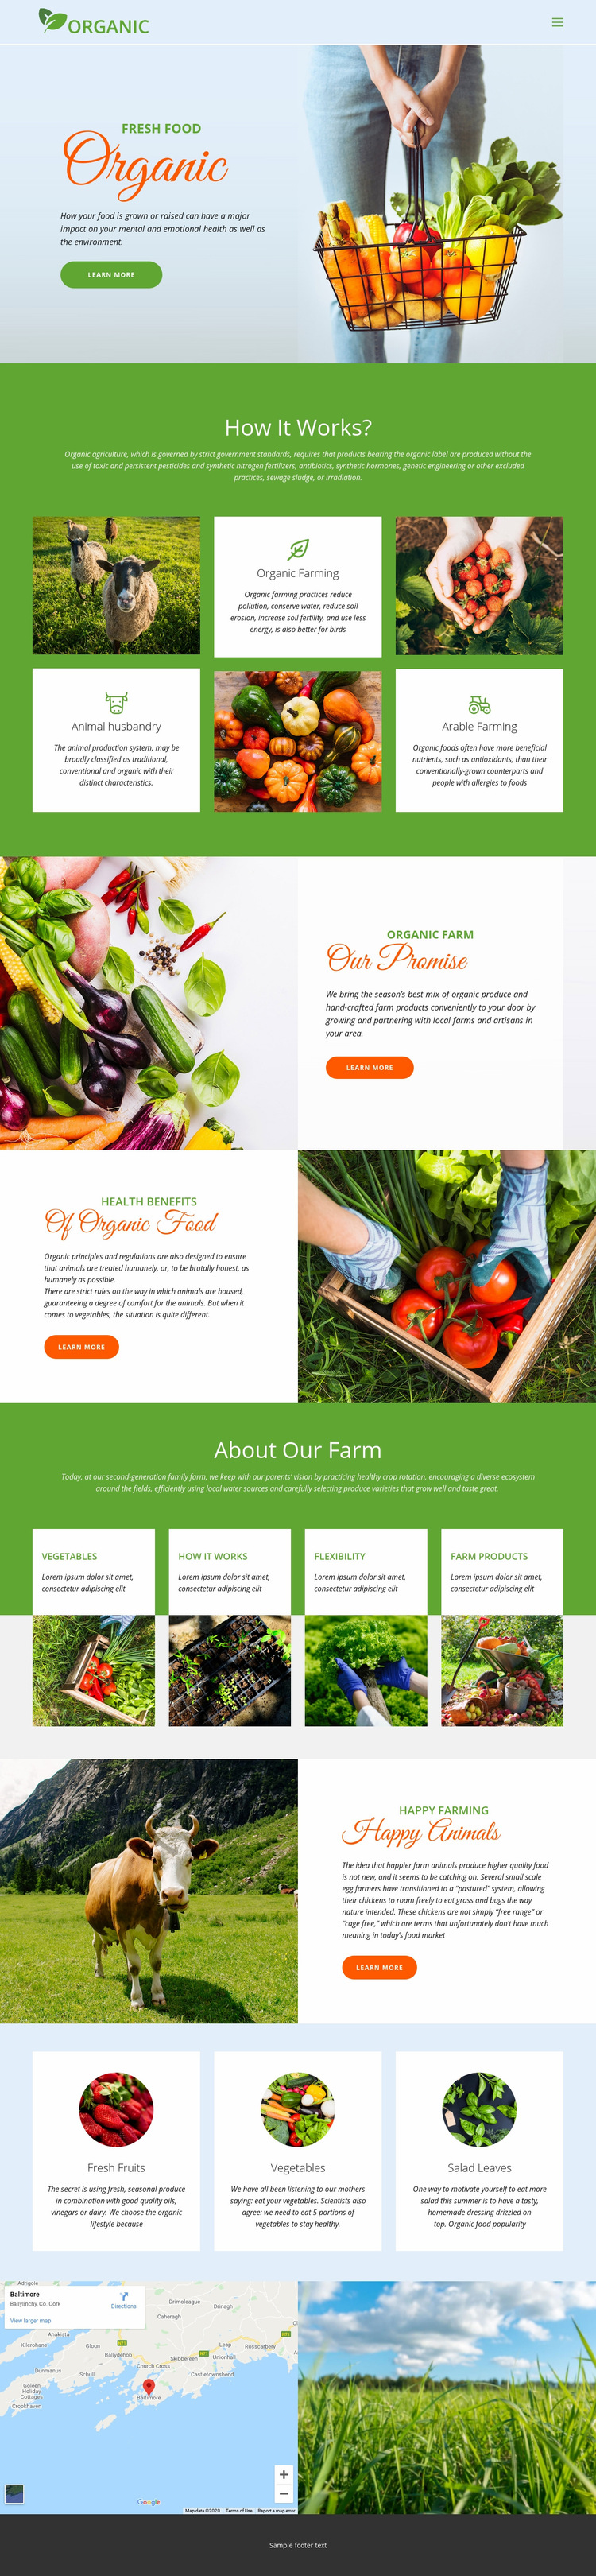 Eat best organic food Web Page Design